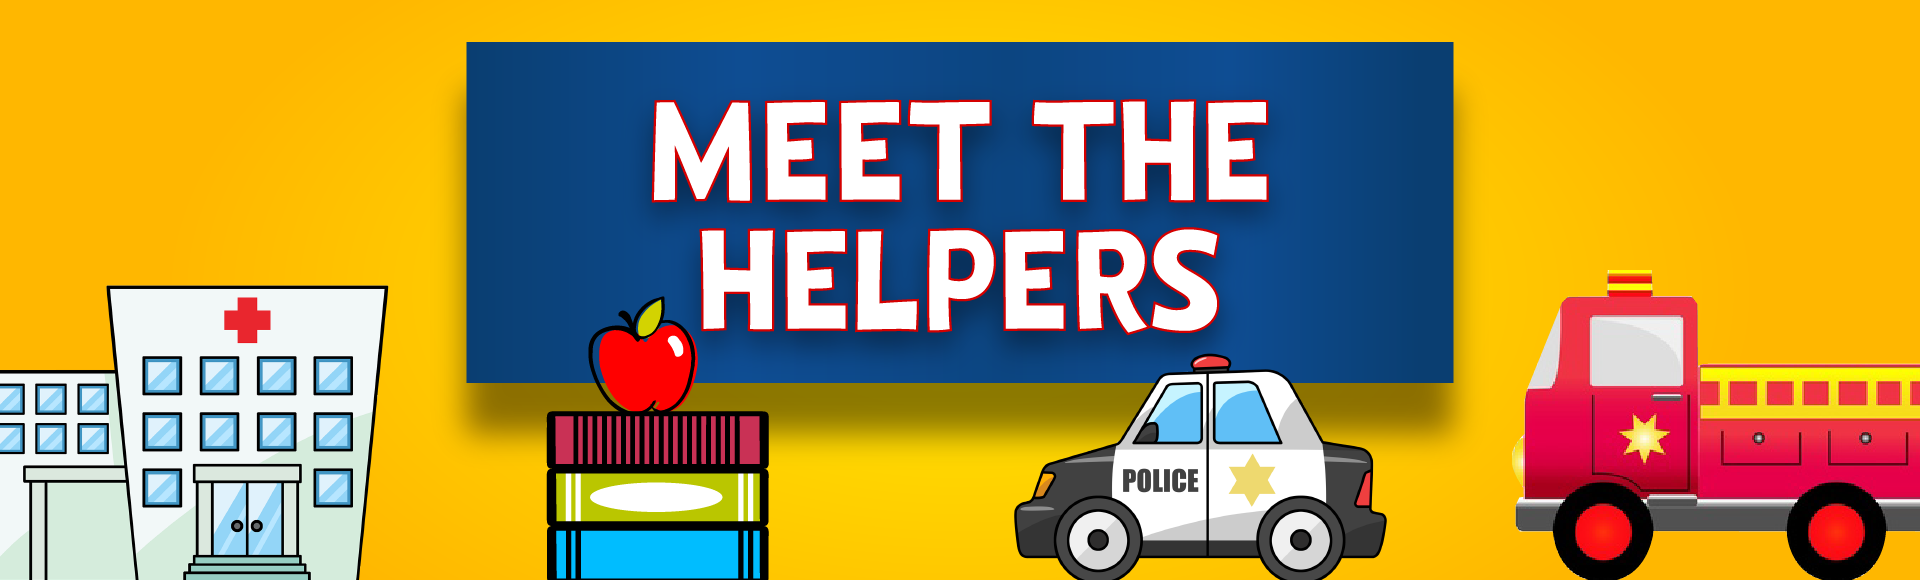 Meet The Helpers Image with Hospital and Emergency Video Illustrations